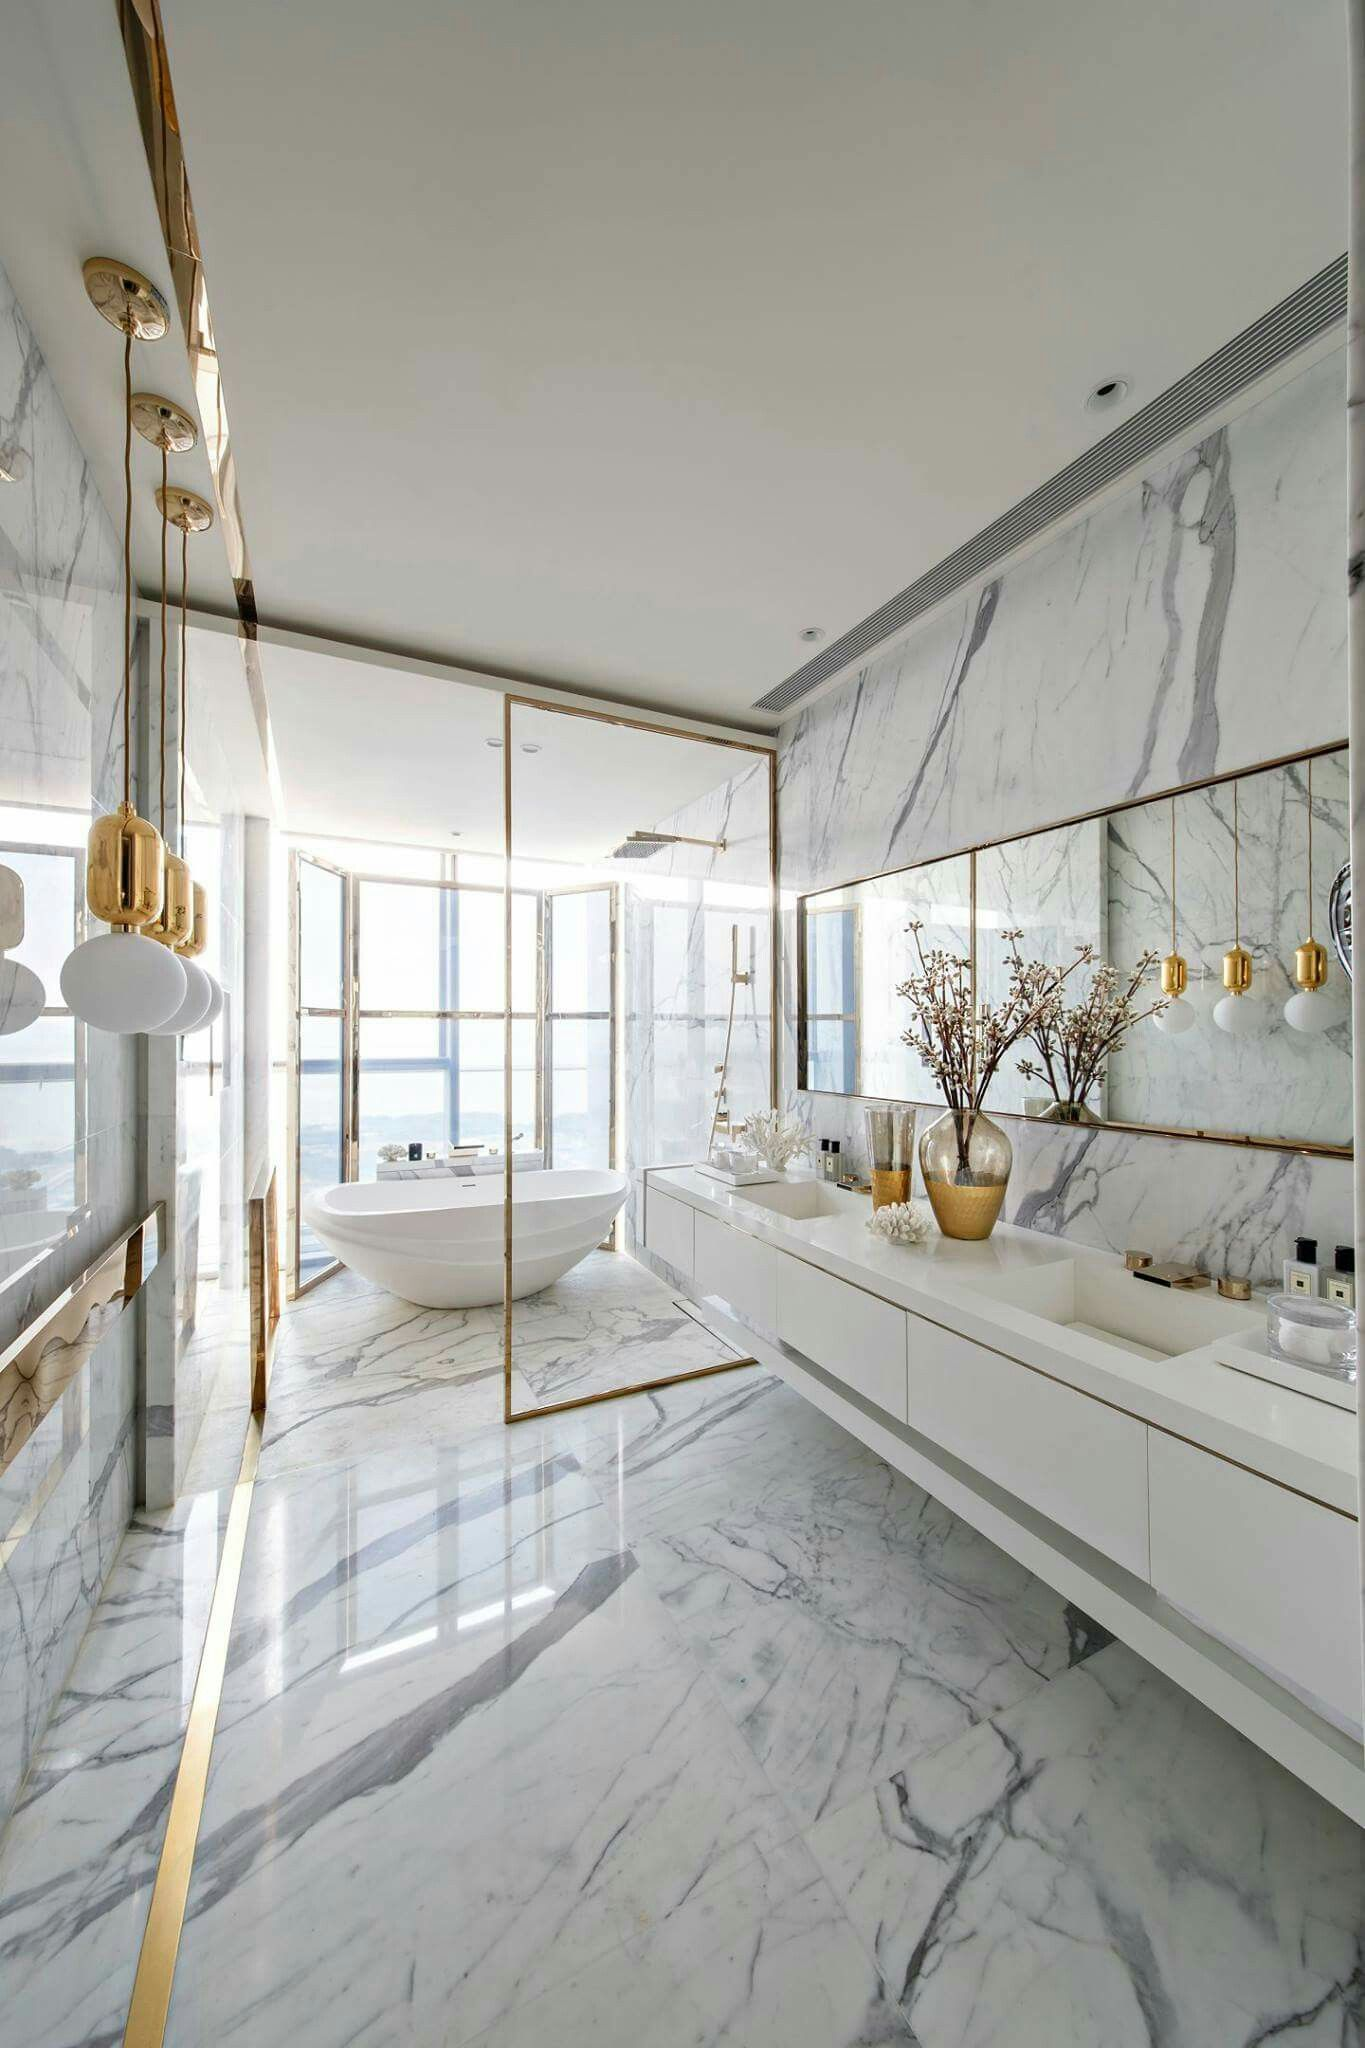 Marble And Gold Bathroominspiration Bathroominteriordesign Interiors In 2020 Contemporary Home Decor Bathroom Interior Design Modern Interior Design